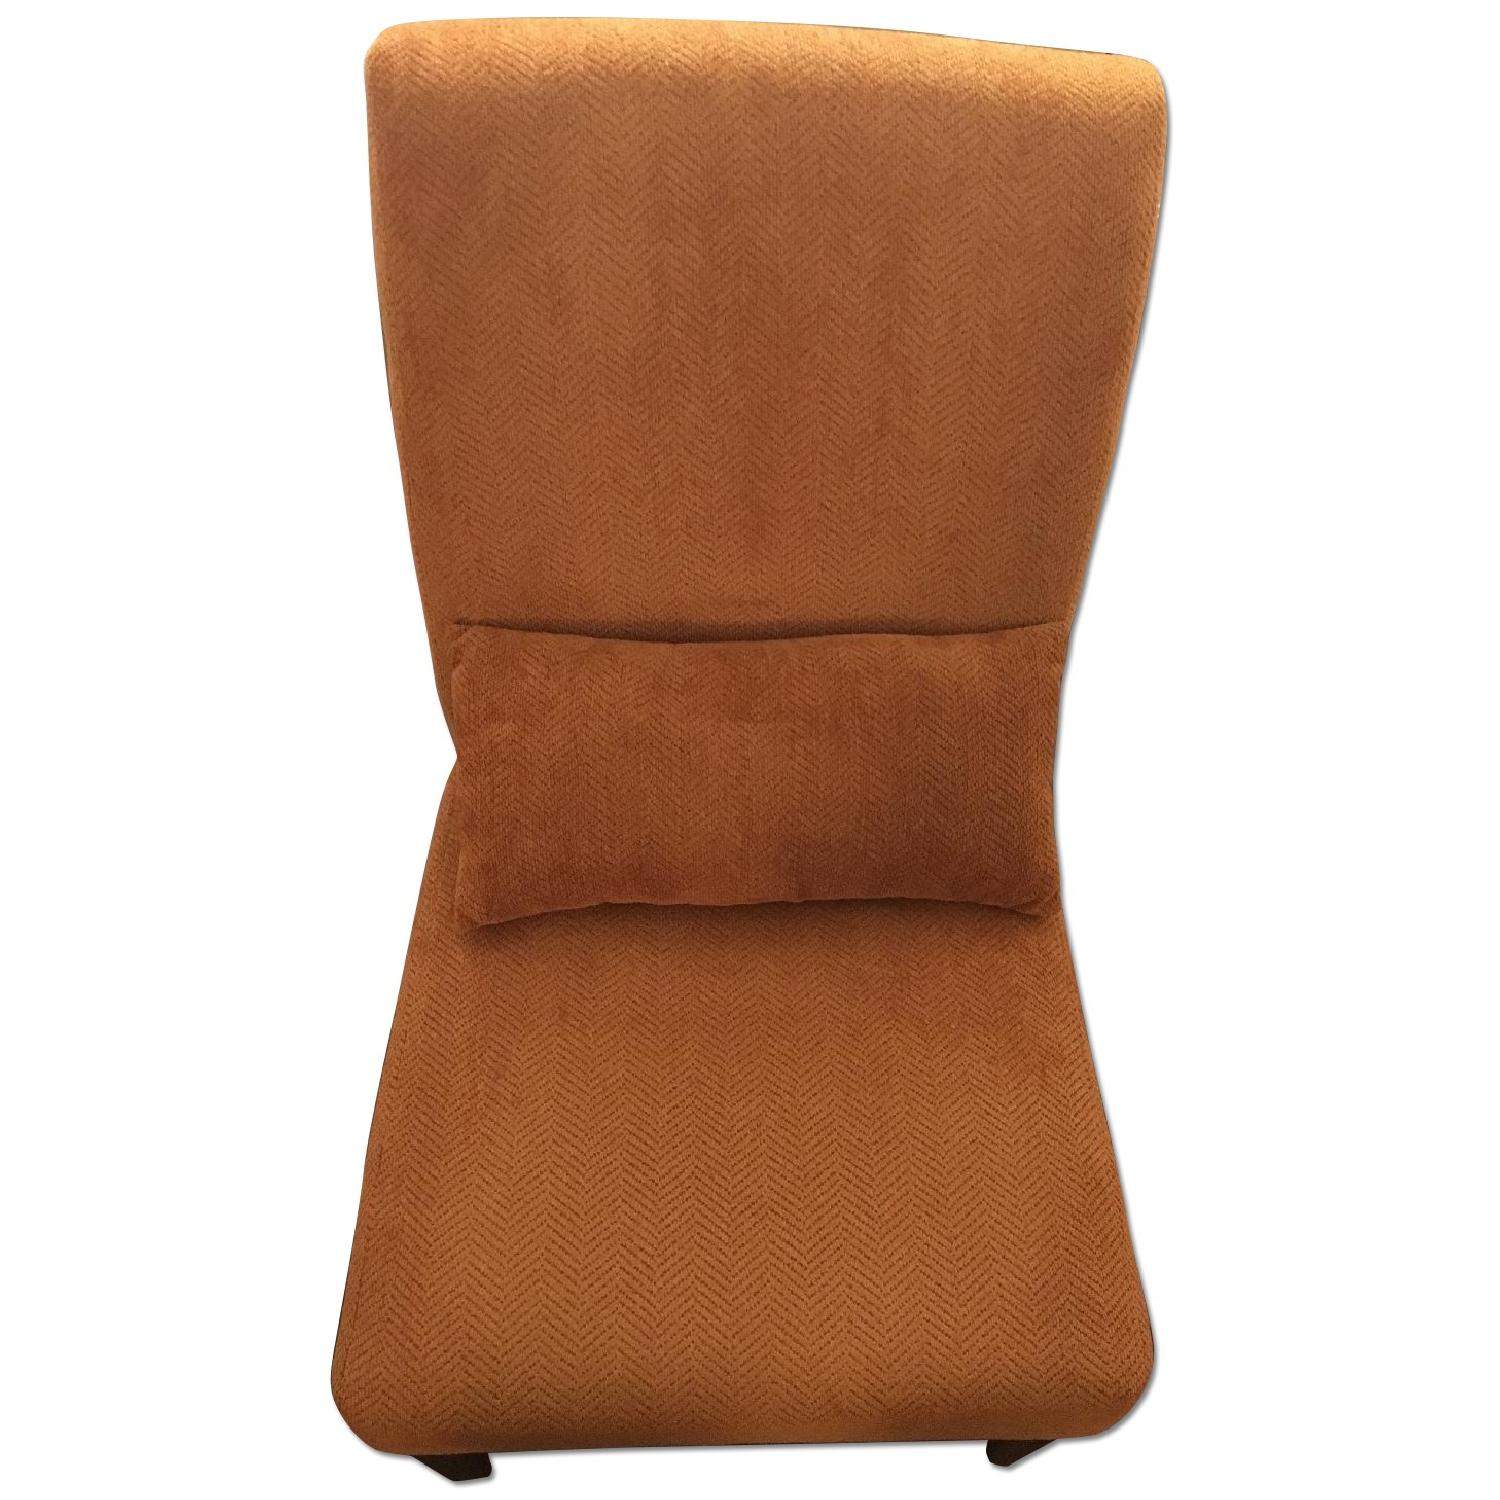 Ashley's Annora Accent Chair - image-0